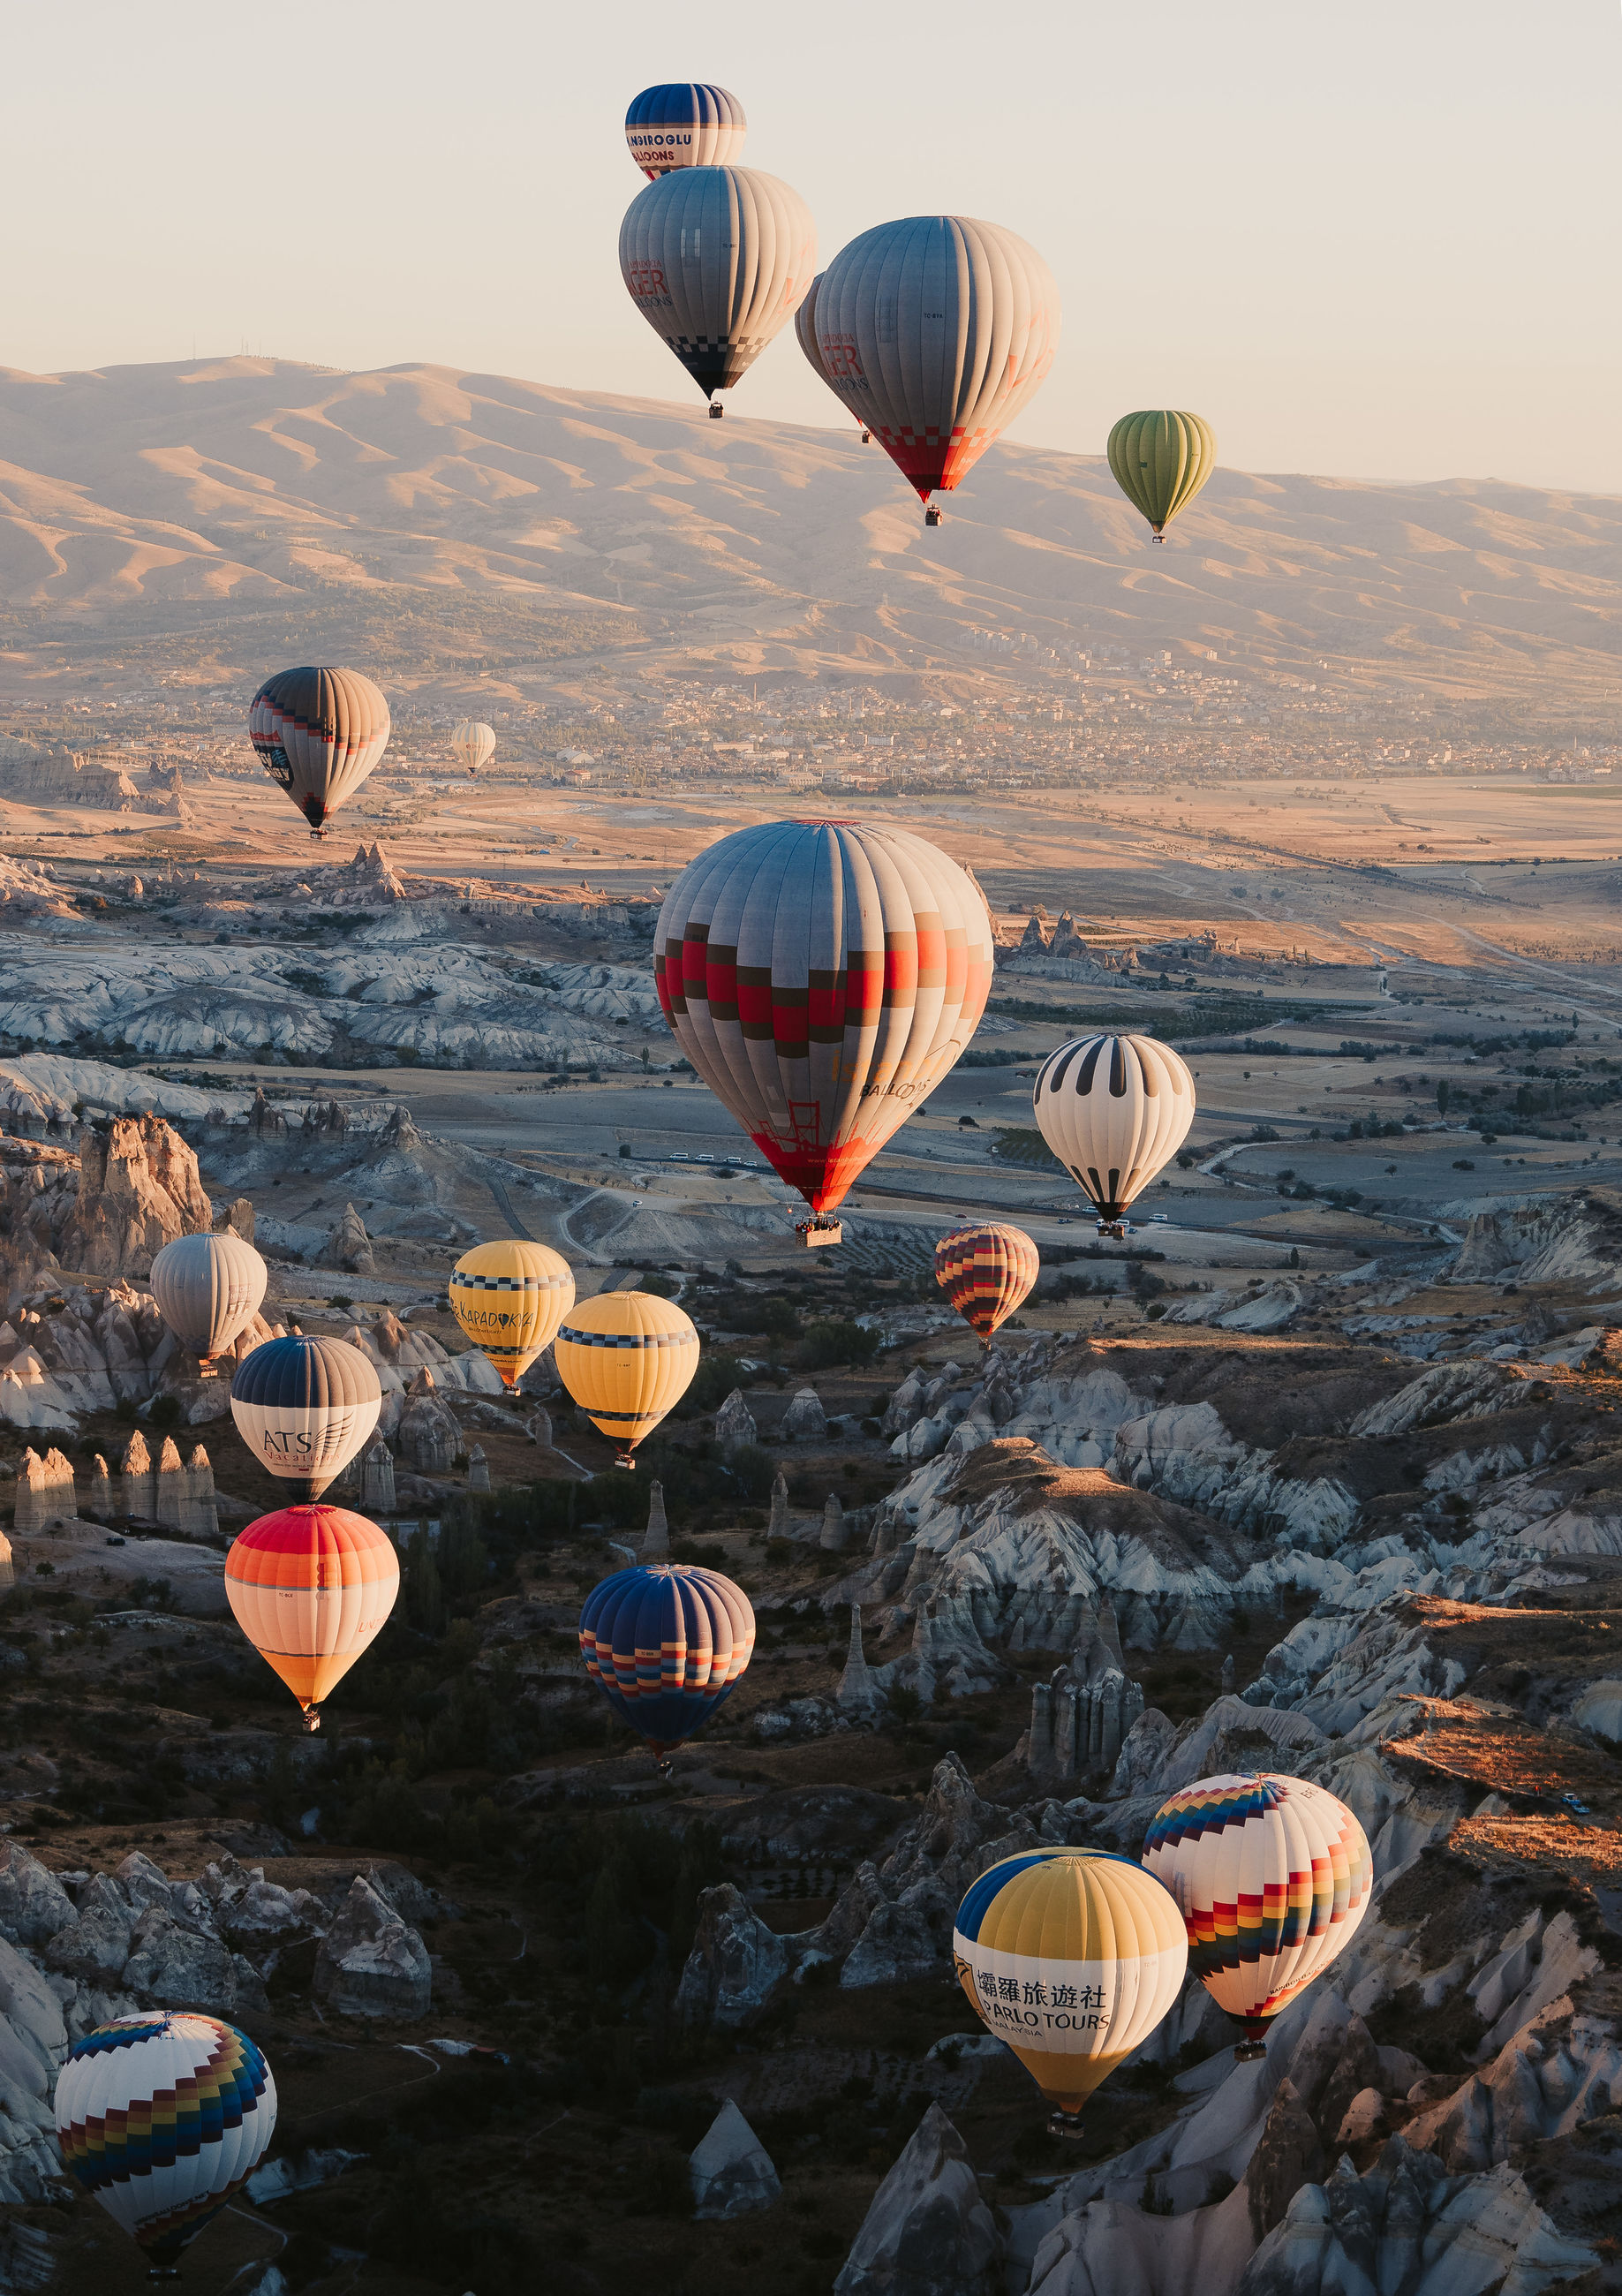 air vehicle, hot air balloon, flying, transportation, mode of transportation, mid-air, balloon, ballooning festival, sky, nature, adventure, travel, rock, multi colored, rock - object, solid, day, beauty in nature, scenics - nature, no people, outdoors